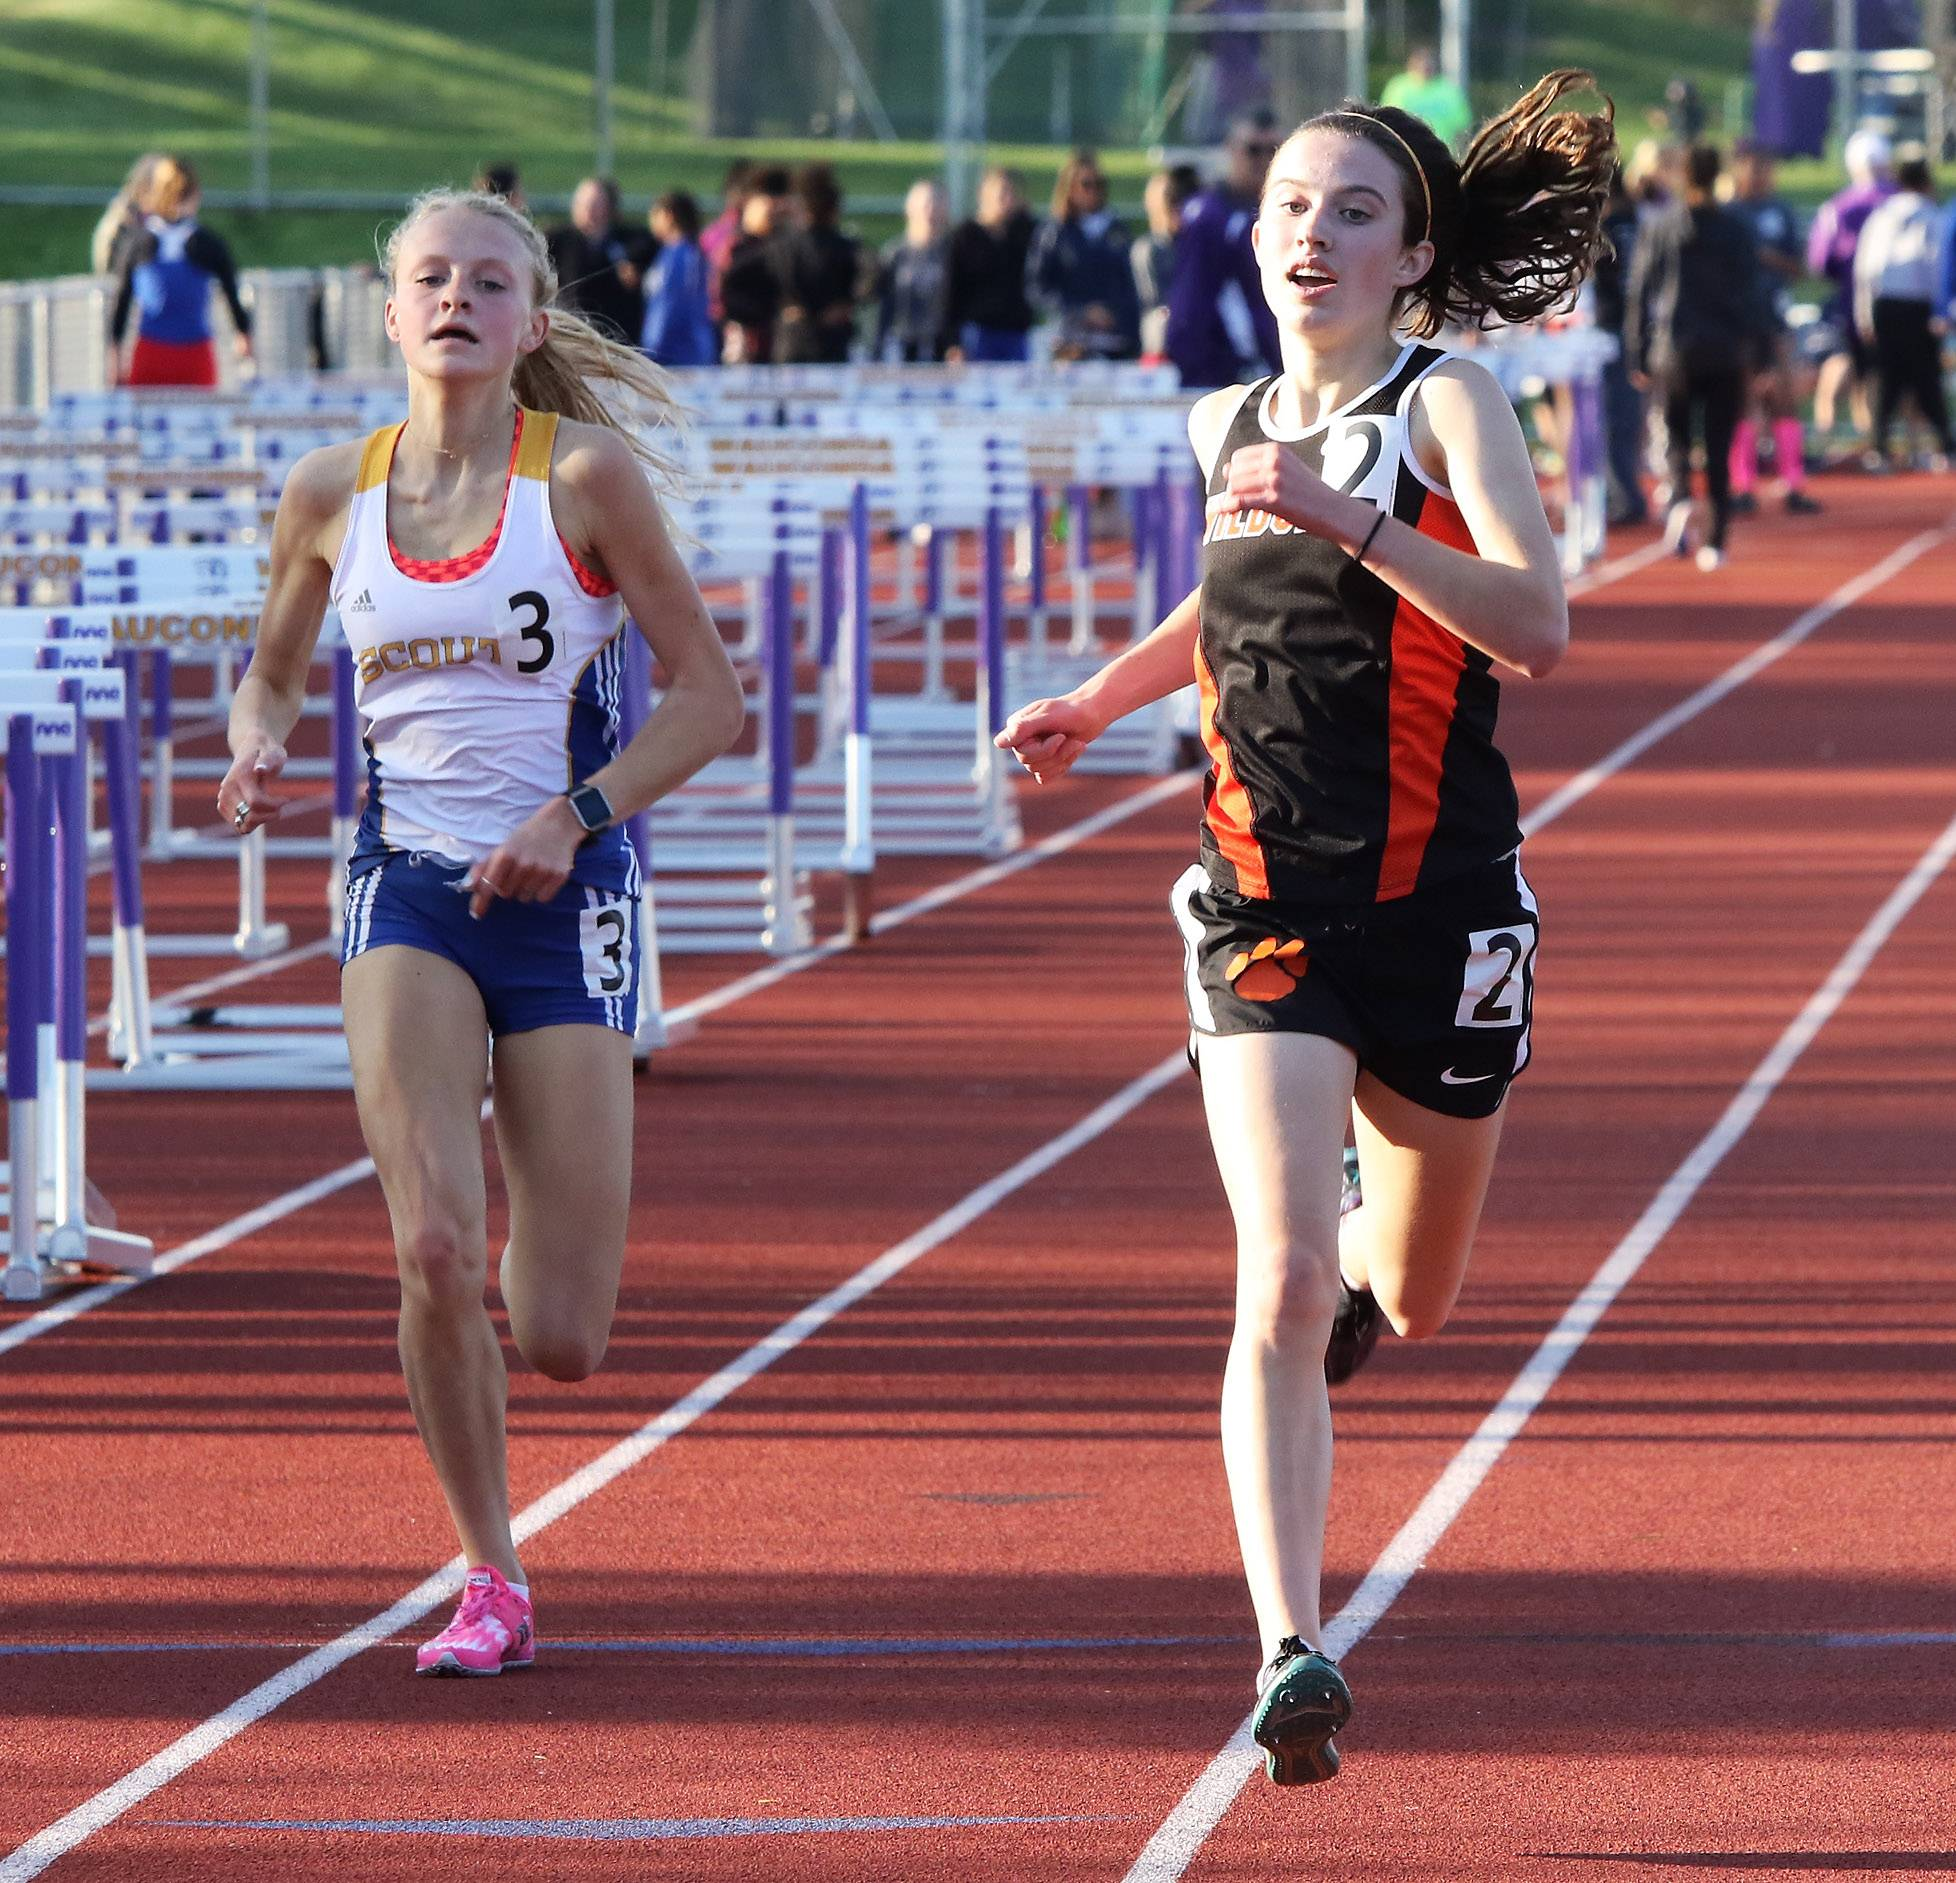 Libertyville runner Melissa Manetsch edges out Lake Forest's Brett Chody in the 3,200-meter run during the North Suburban Conference meet Thursday at Wauconda.